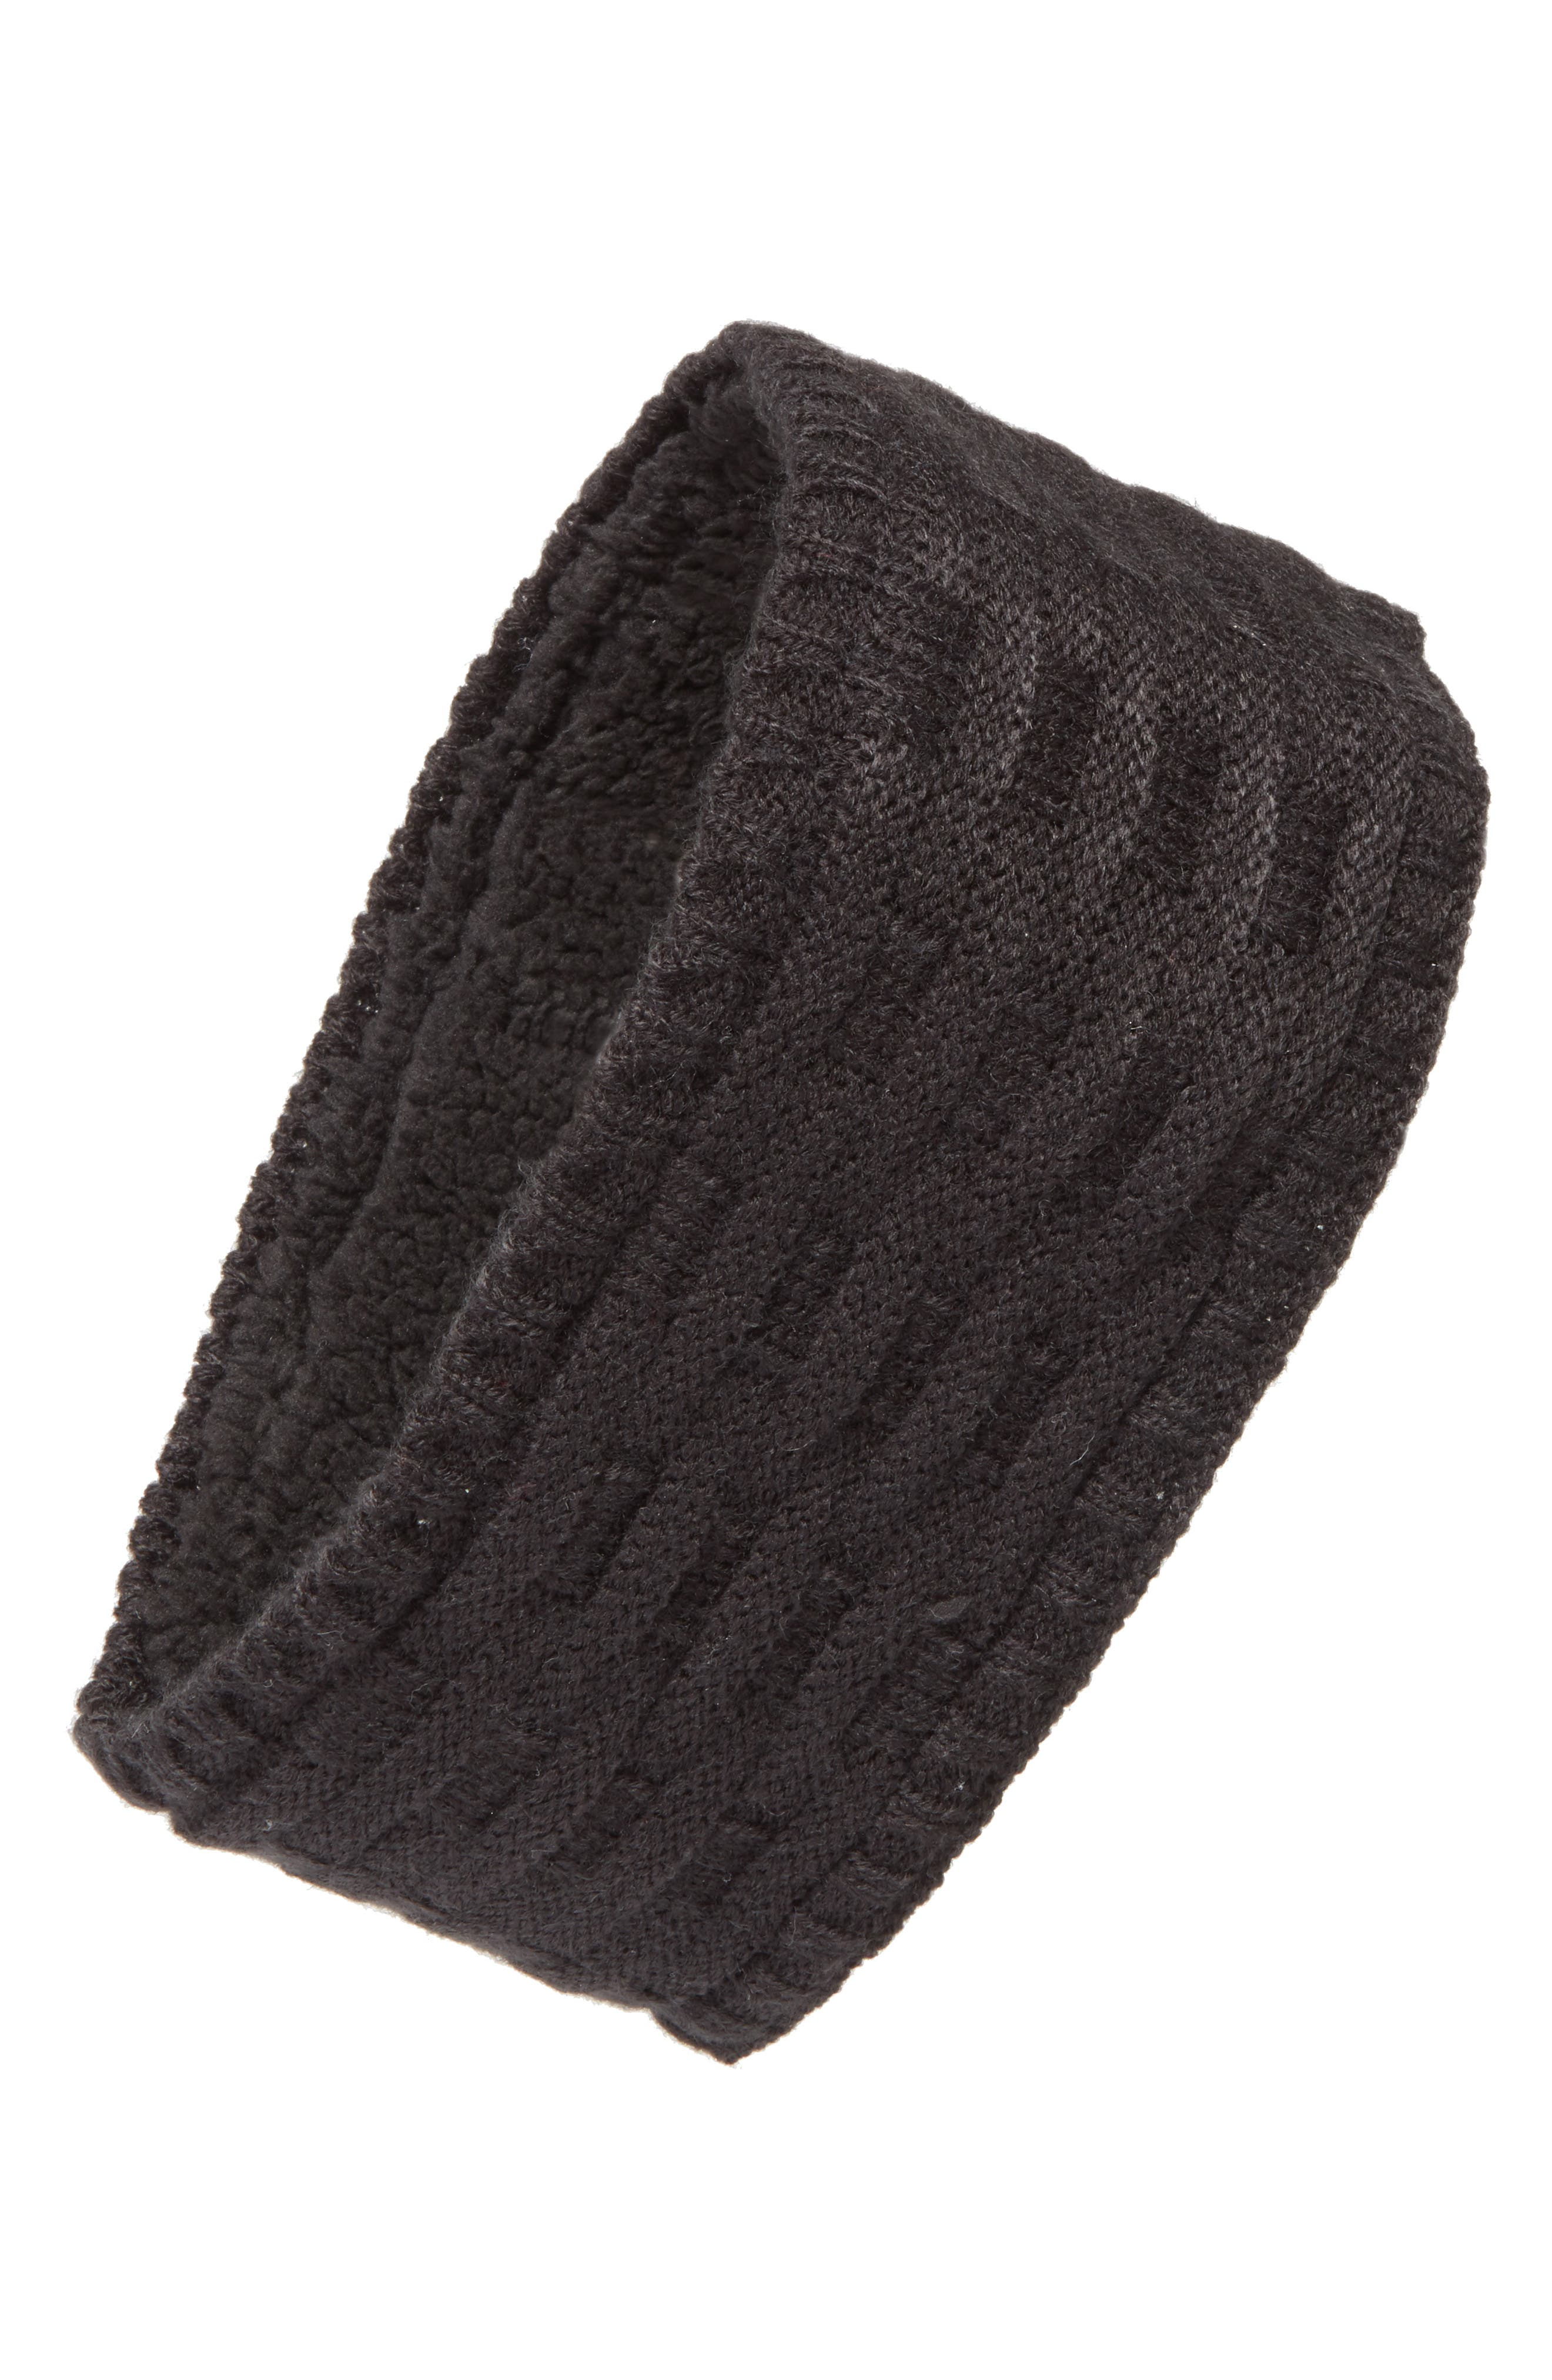 Cross Cable Knit Headband,                         Main,                         color,